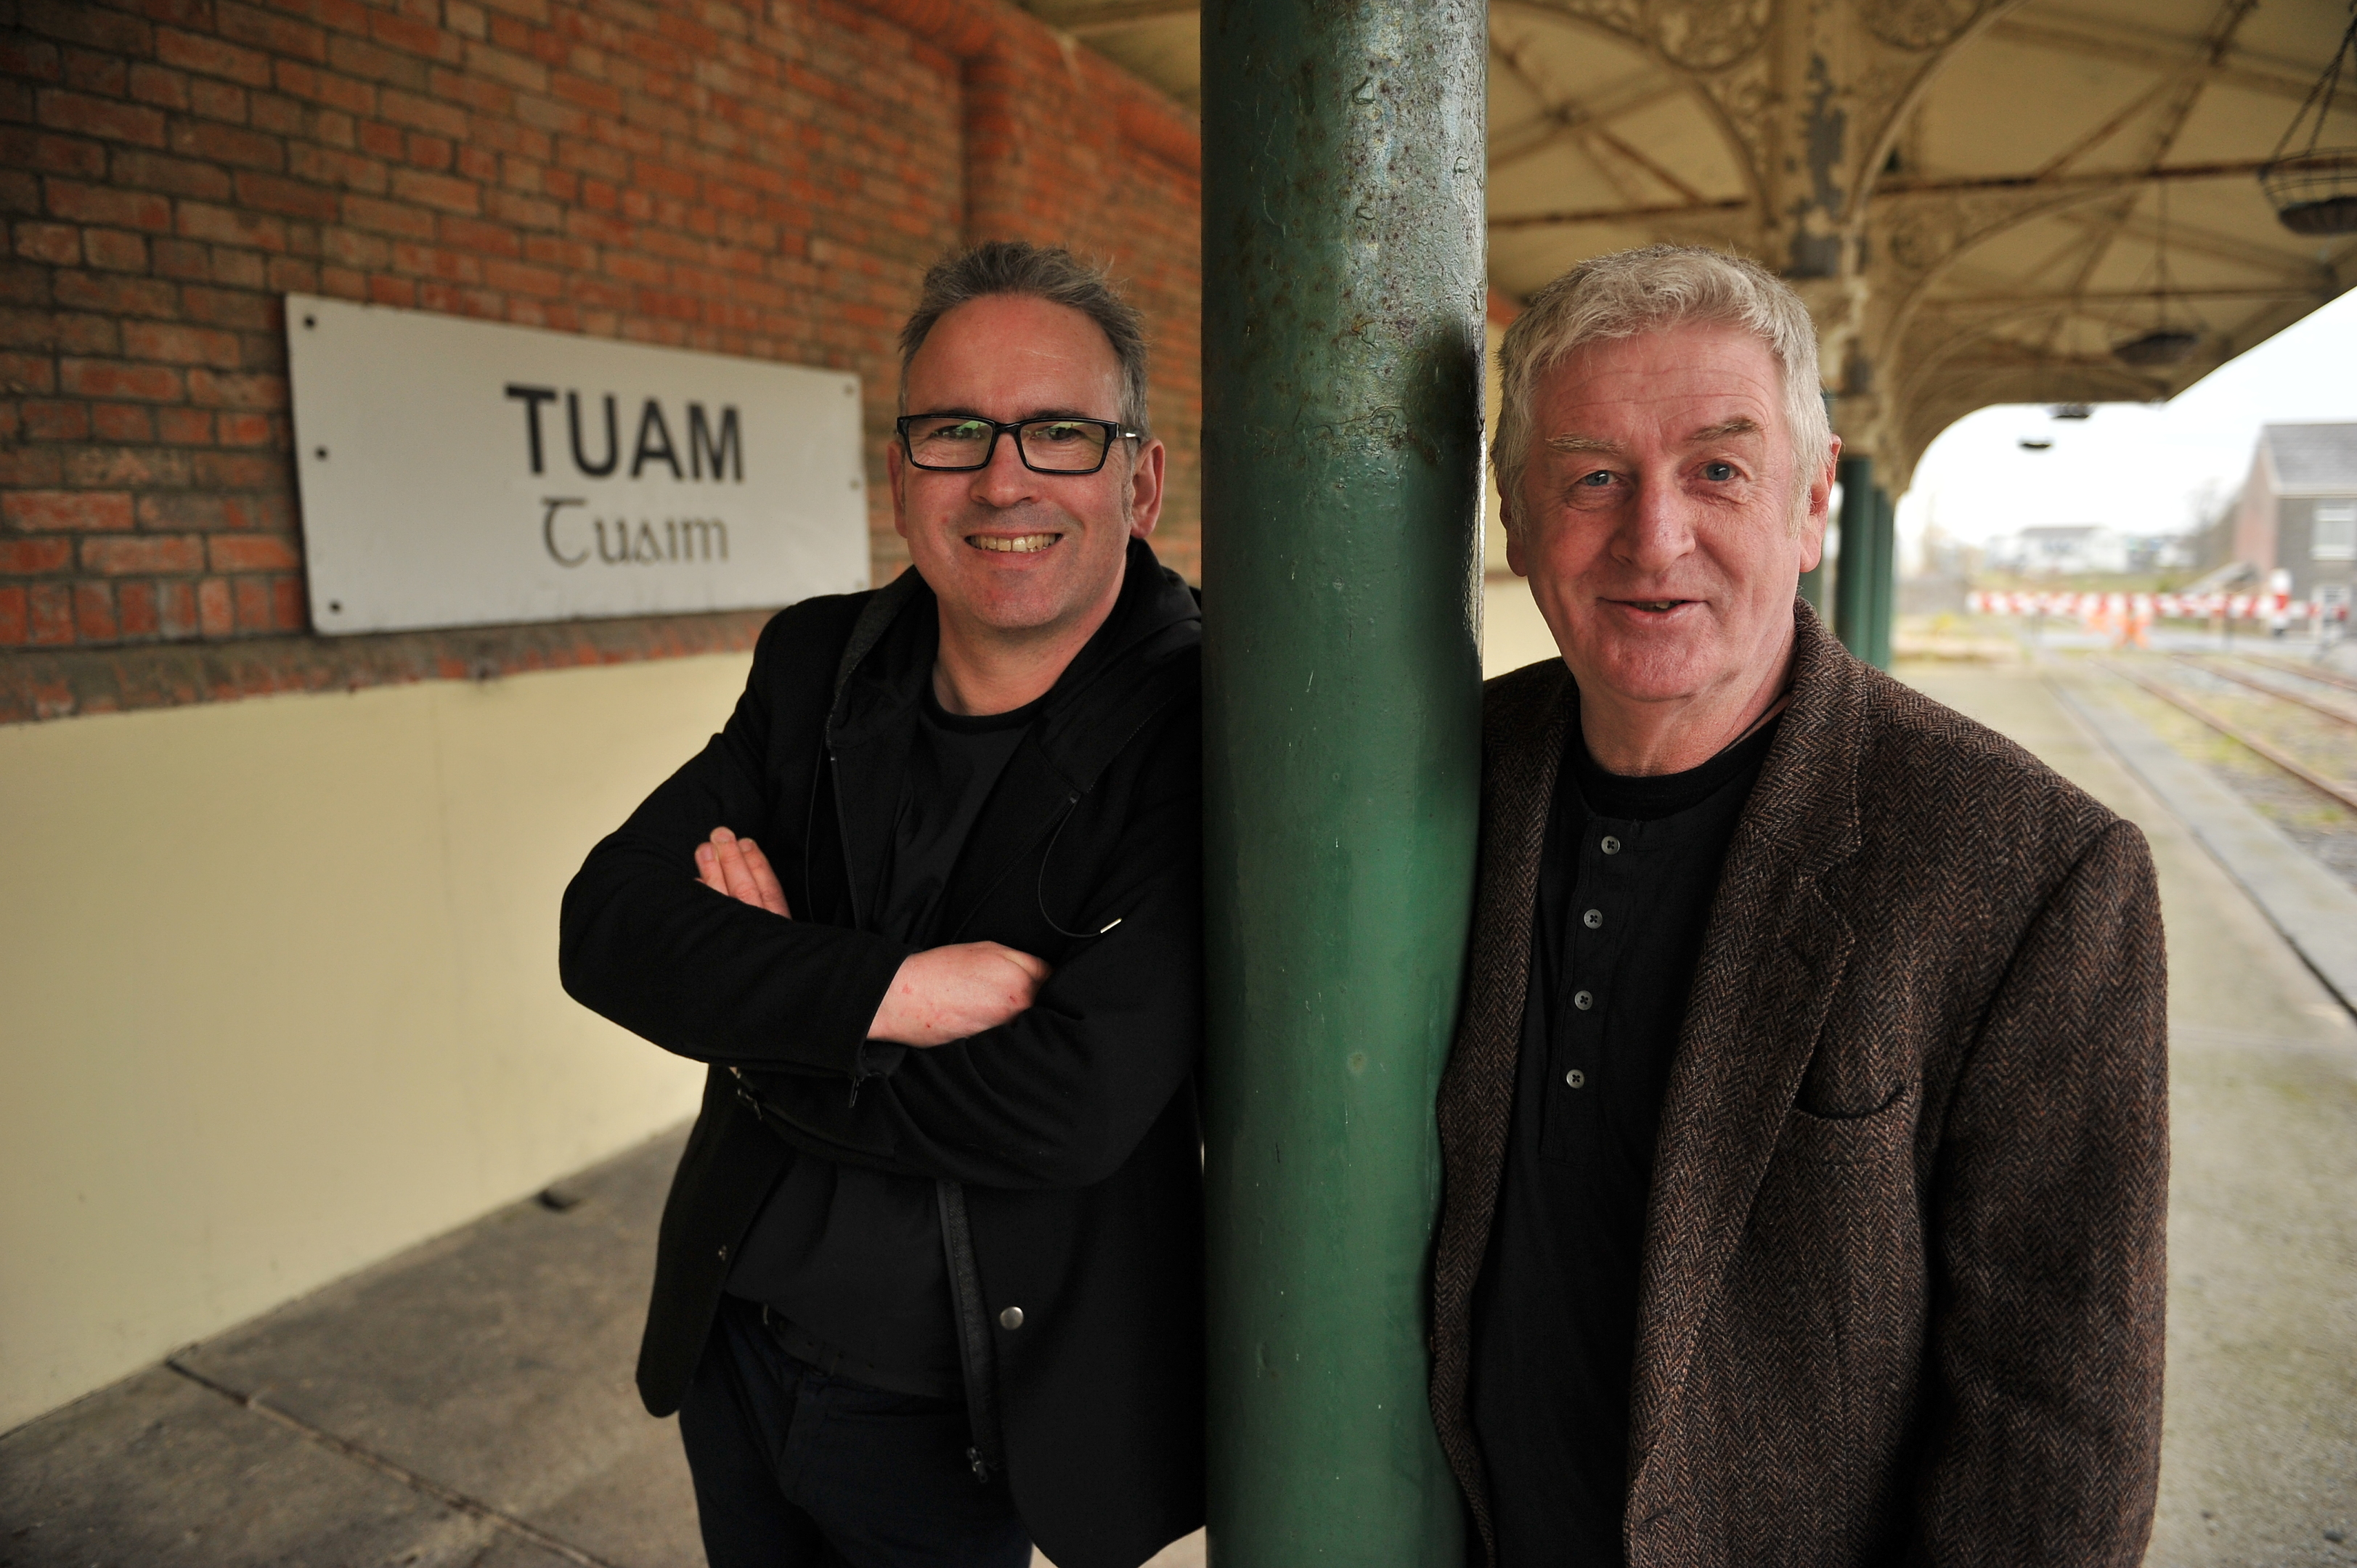 Leo Moran and Davy Carton of the Sawdoctors are going back on the road.